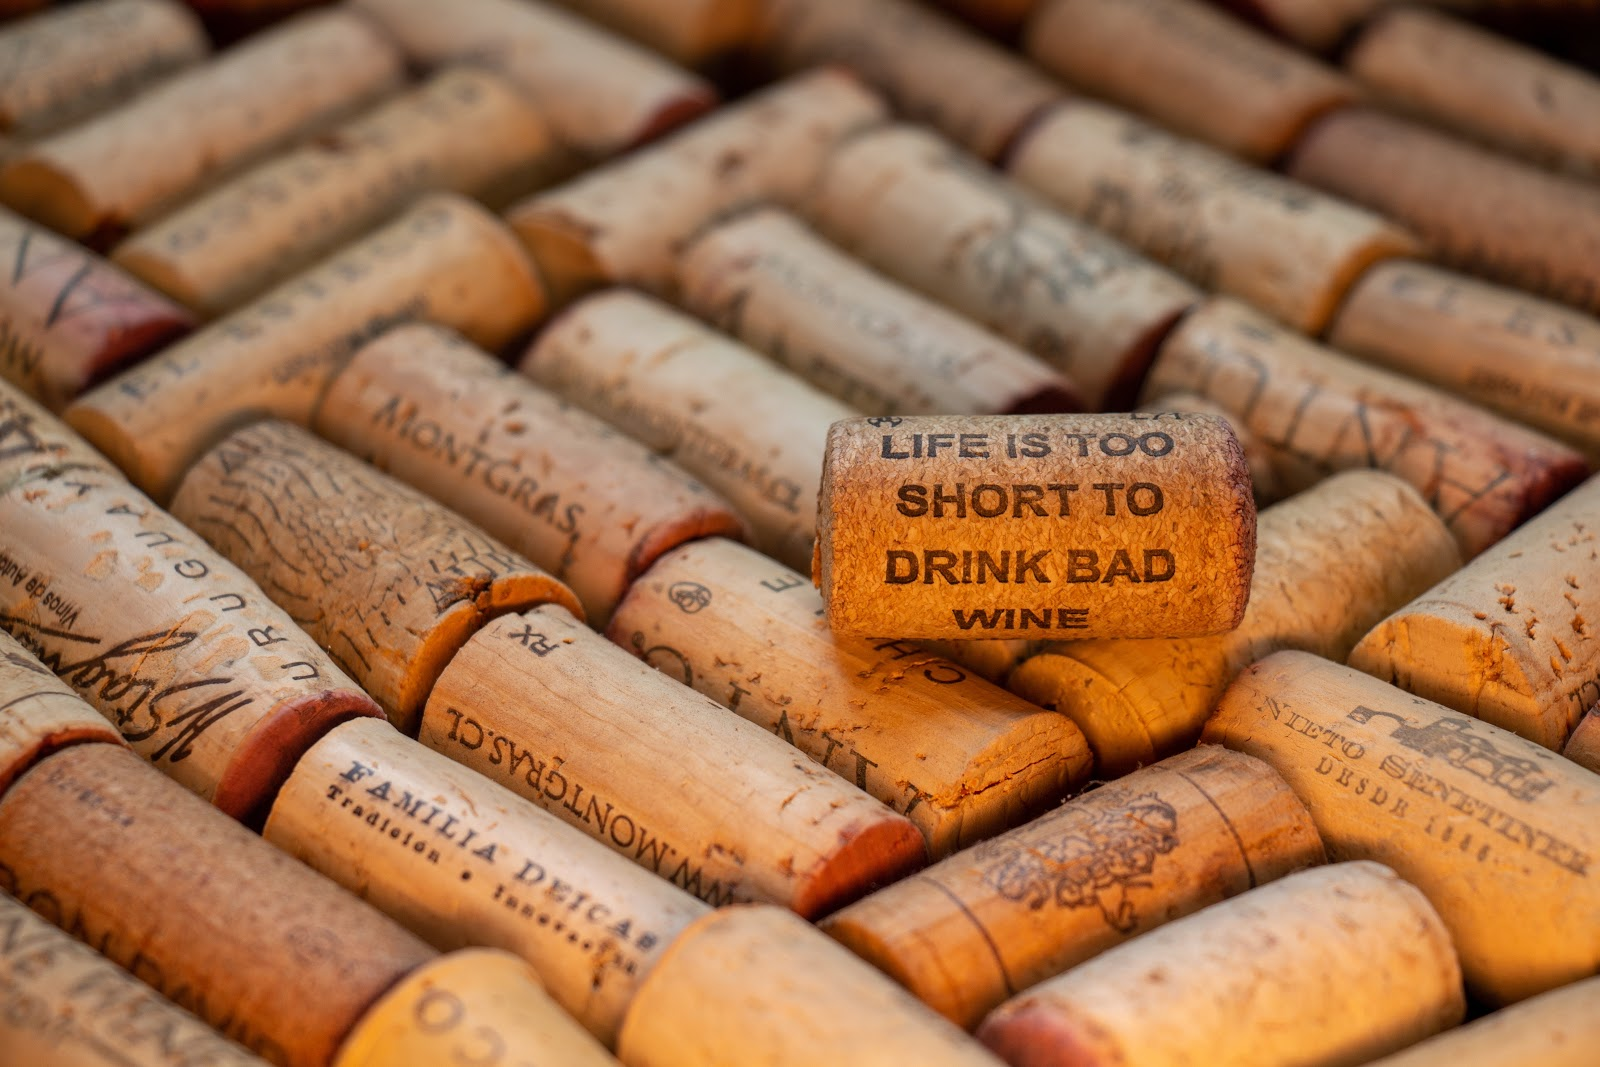 A lot of wine corks; wine guide